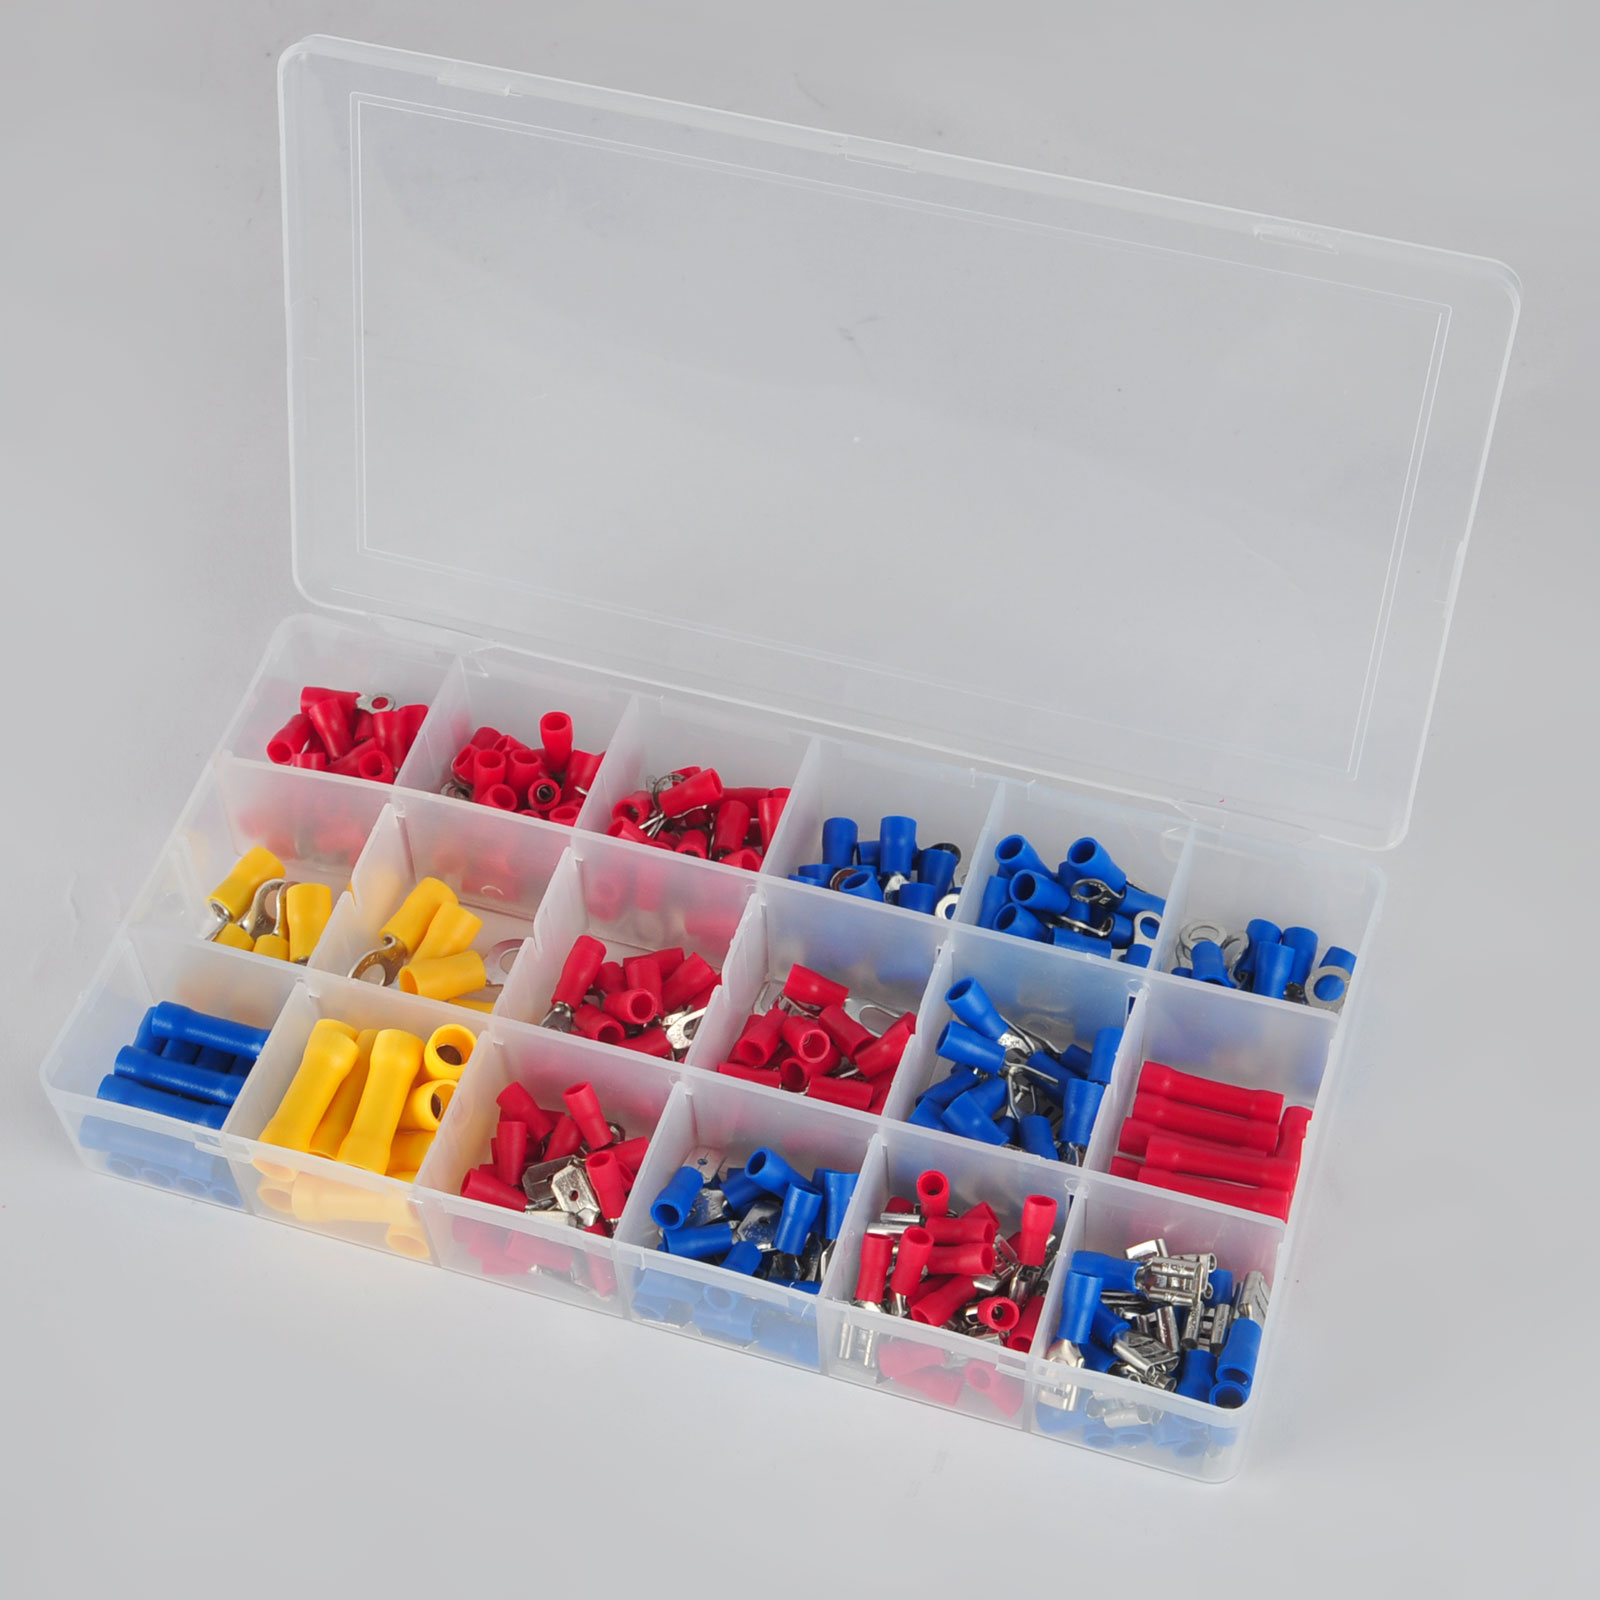 300pcs/set Assorted Insulated Crimp Terminals Electrical Wire Connector Butt Kit Set For Repair Tools pro skit sd 2310 100 pcs assorted power bits set repair kit